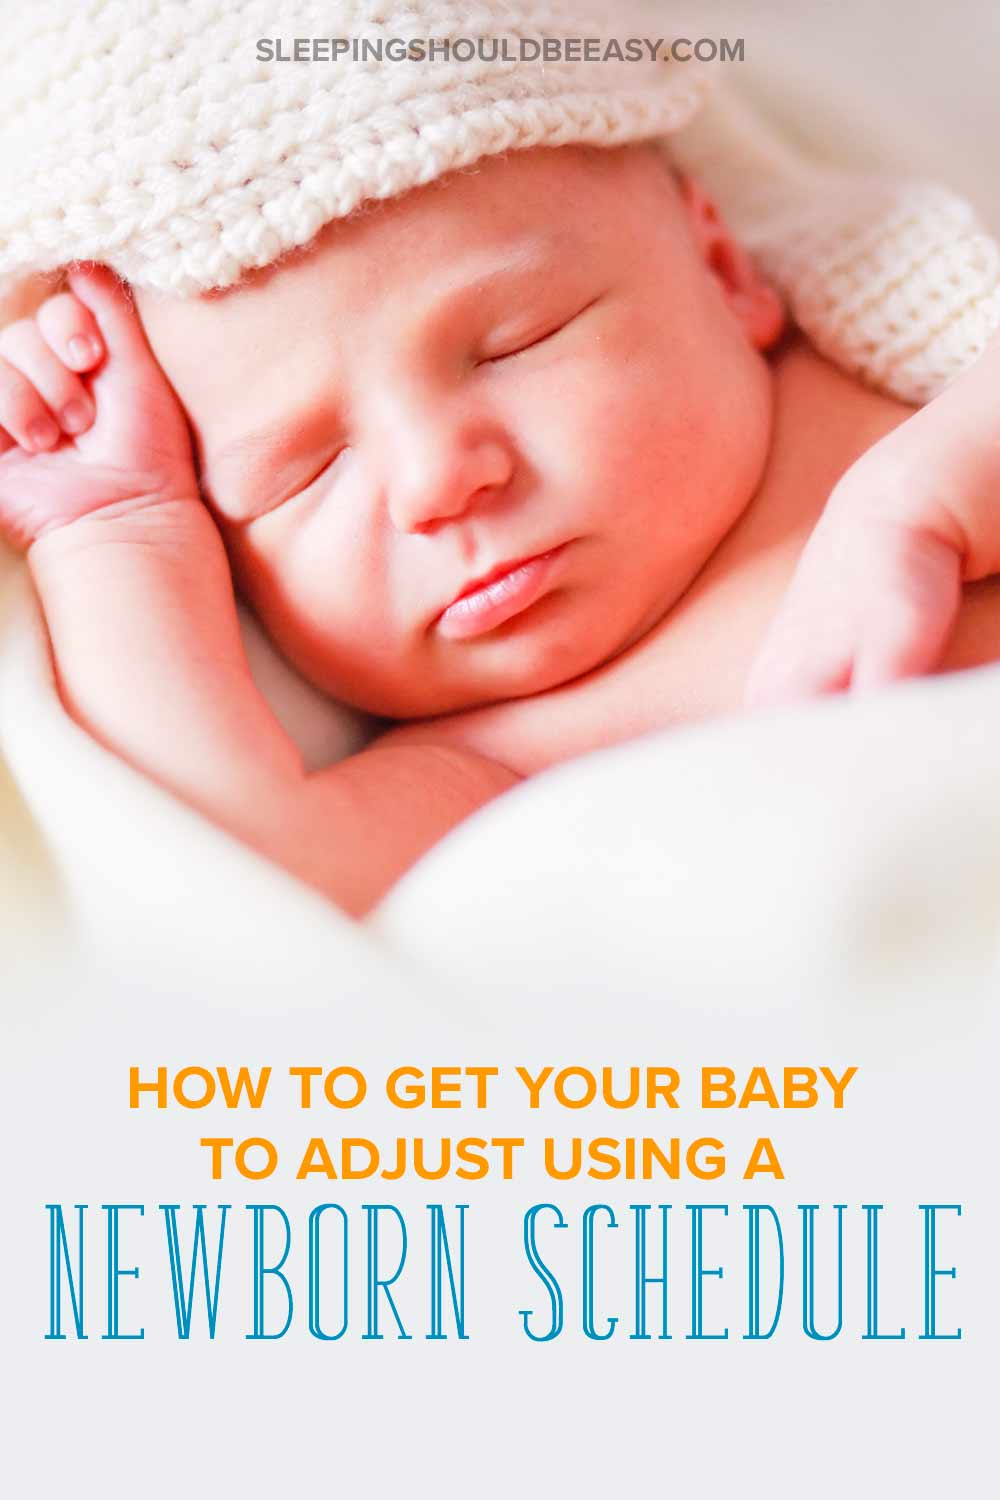 Newborn Bedtime How To Get Your Baby To Adjust Using A Newborn Schedule